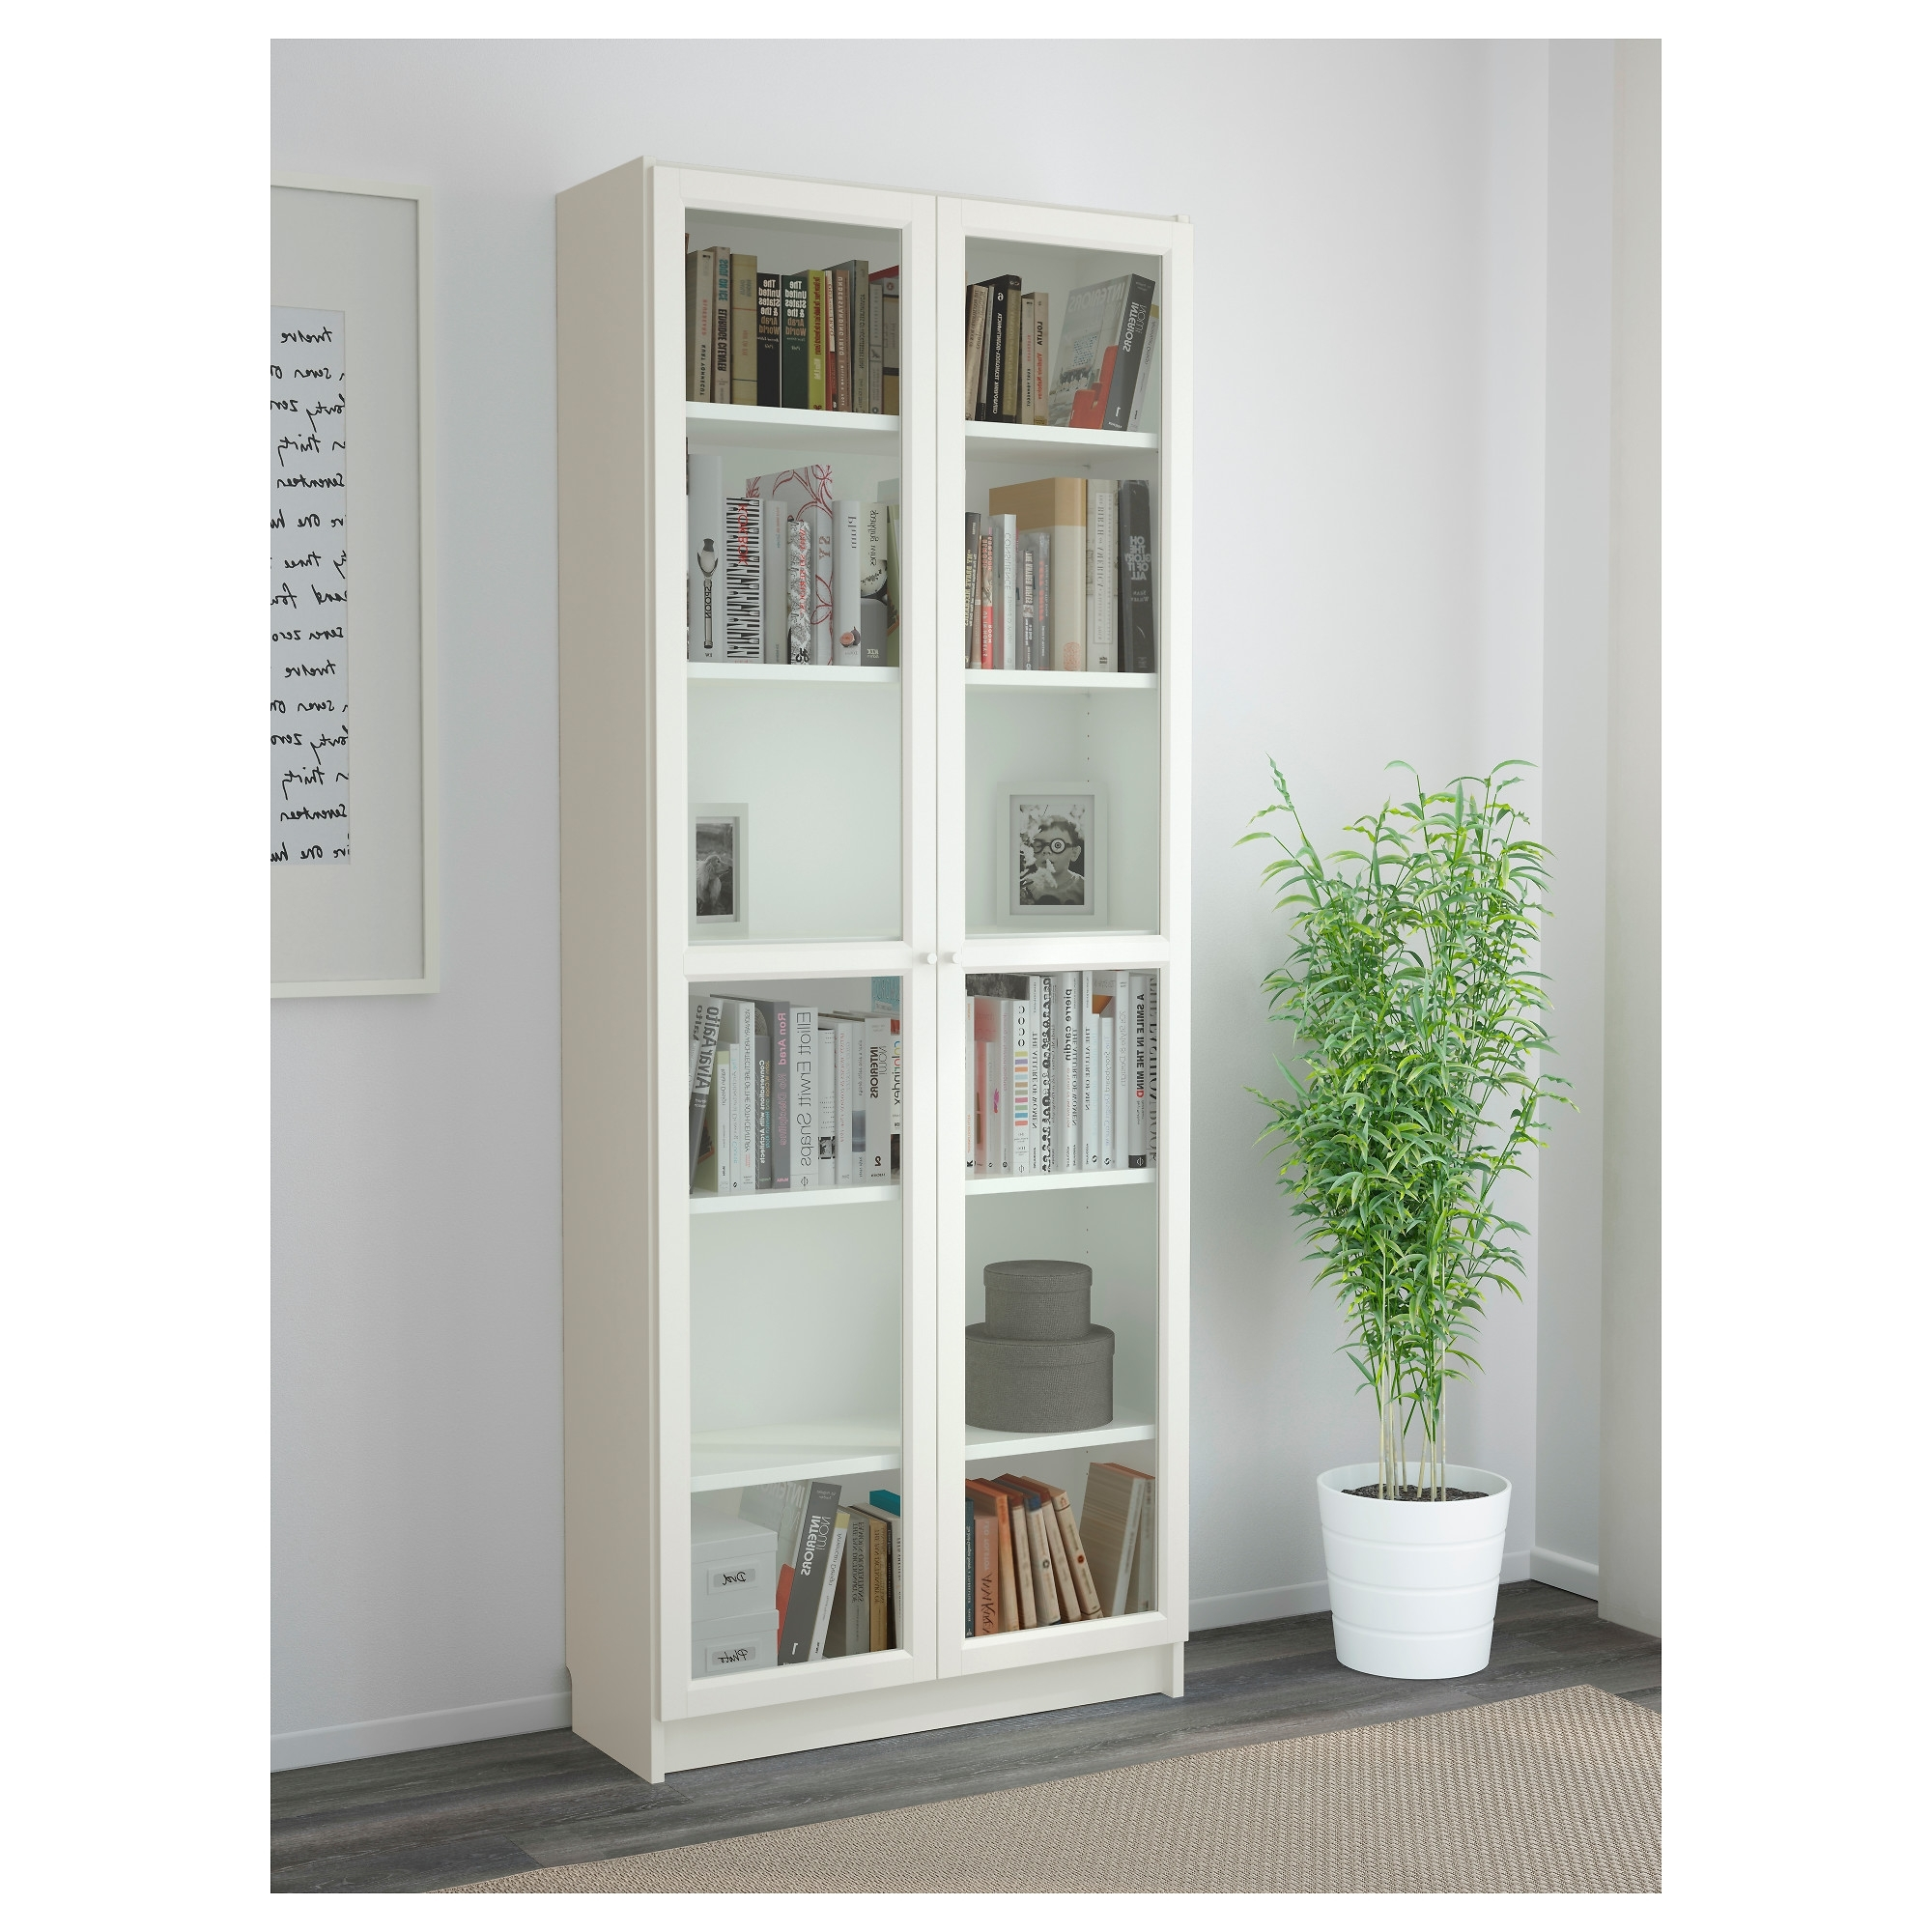 Preferred Billy / Oxberg Bookcase – White, 80x202x30 Cm – Ikea Inside White Bookcases With Glass Doors (View 9 of 15)